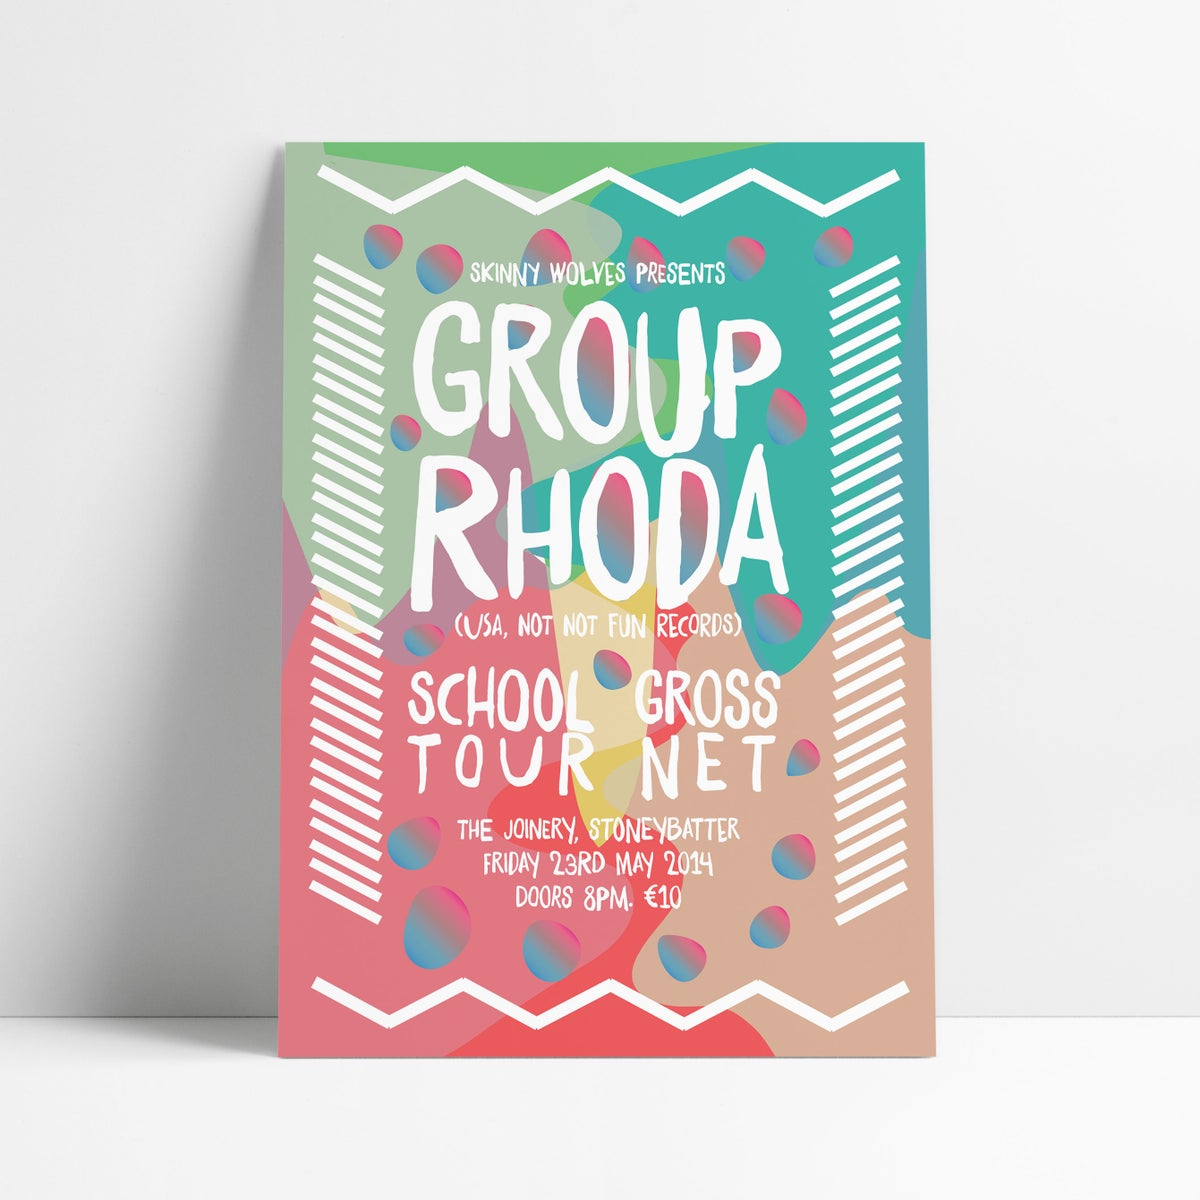 Image of GROUP RHODA / School Tour / Gross Net - Live in The Joinery, Dublin